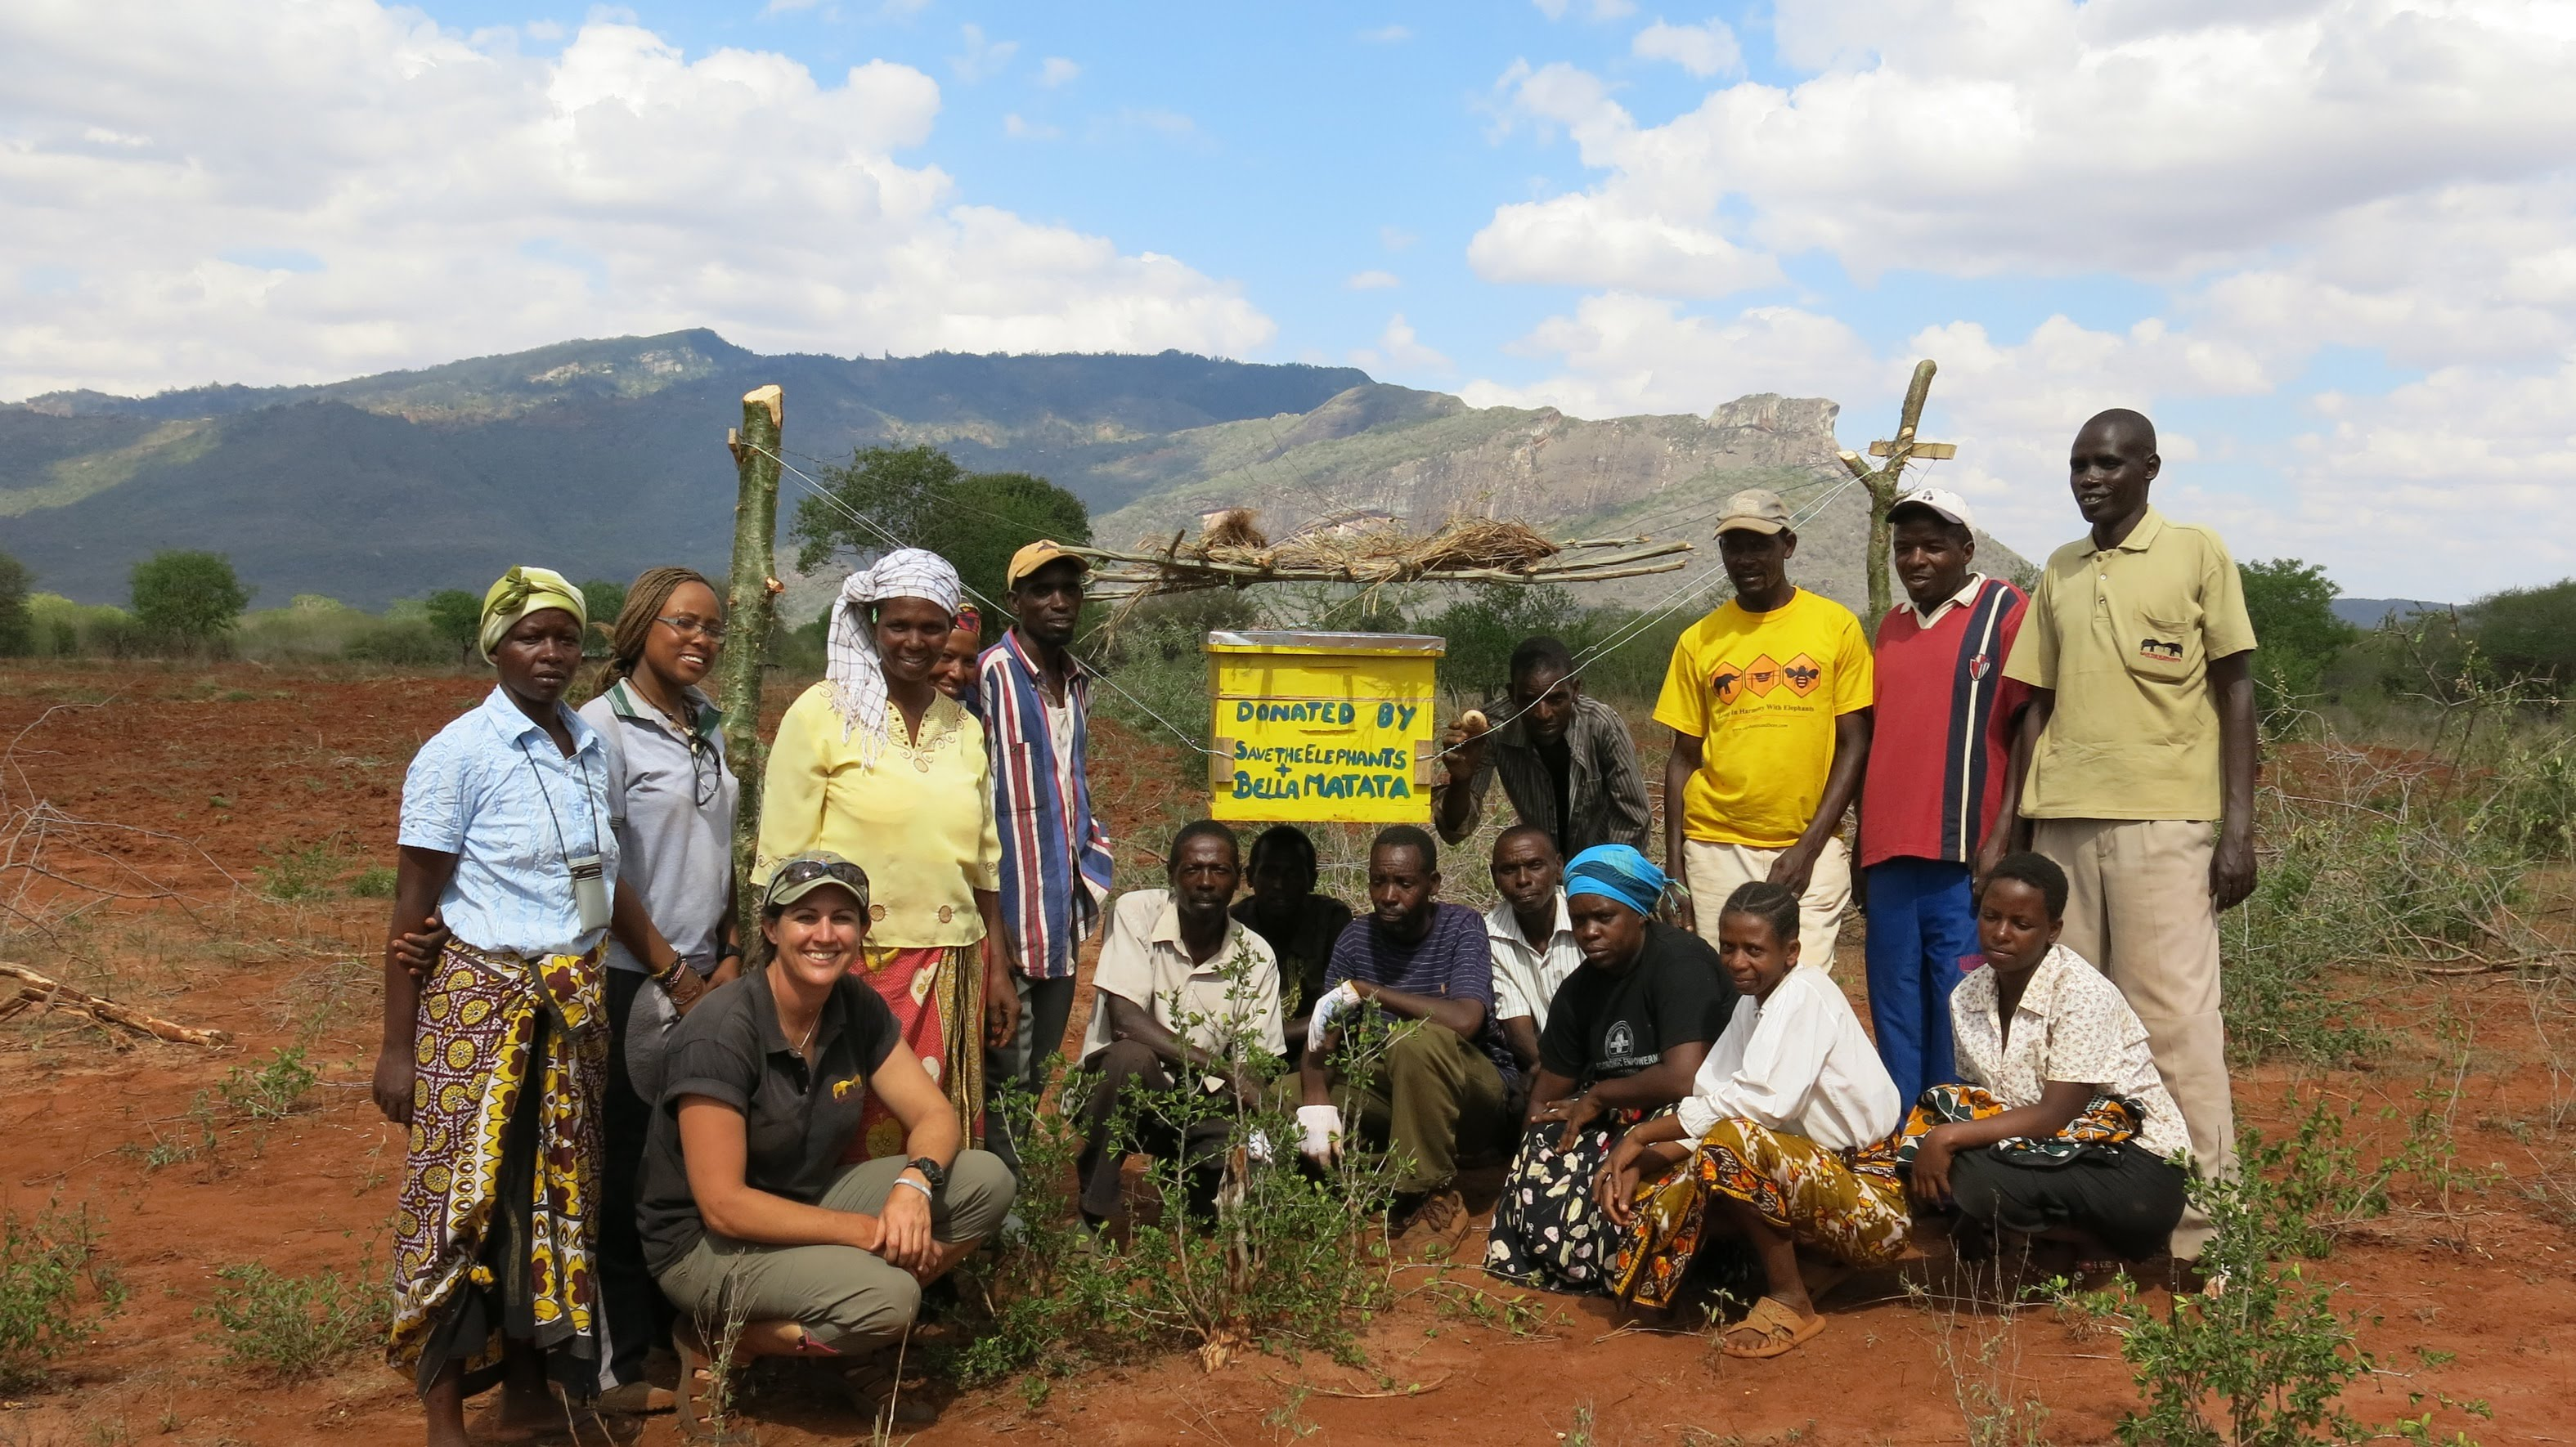 African honey bees change lives and save elephants